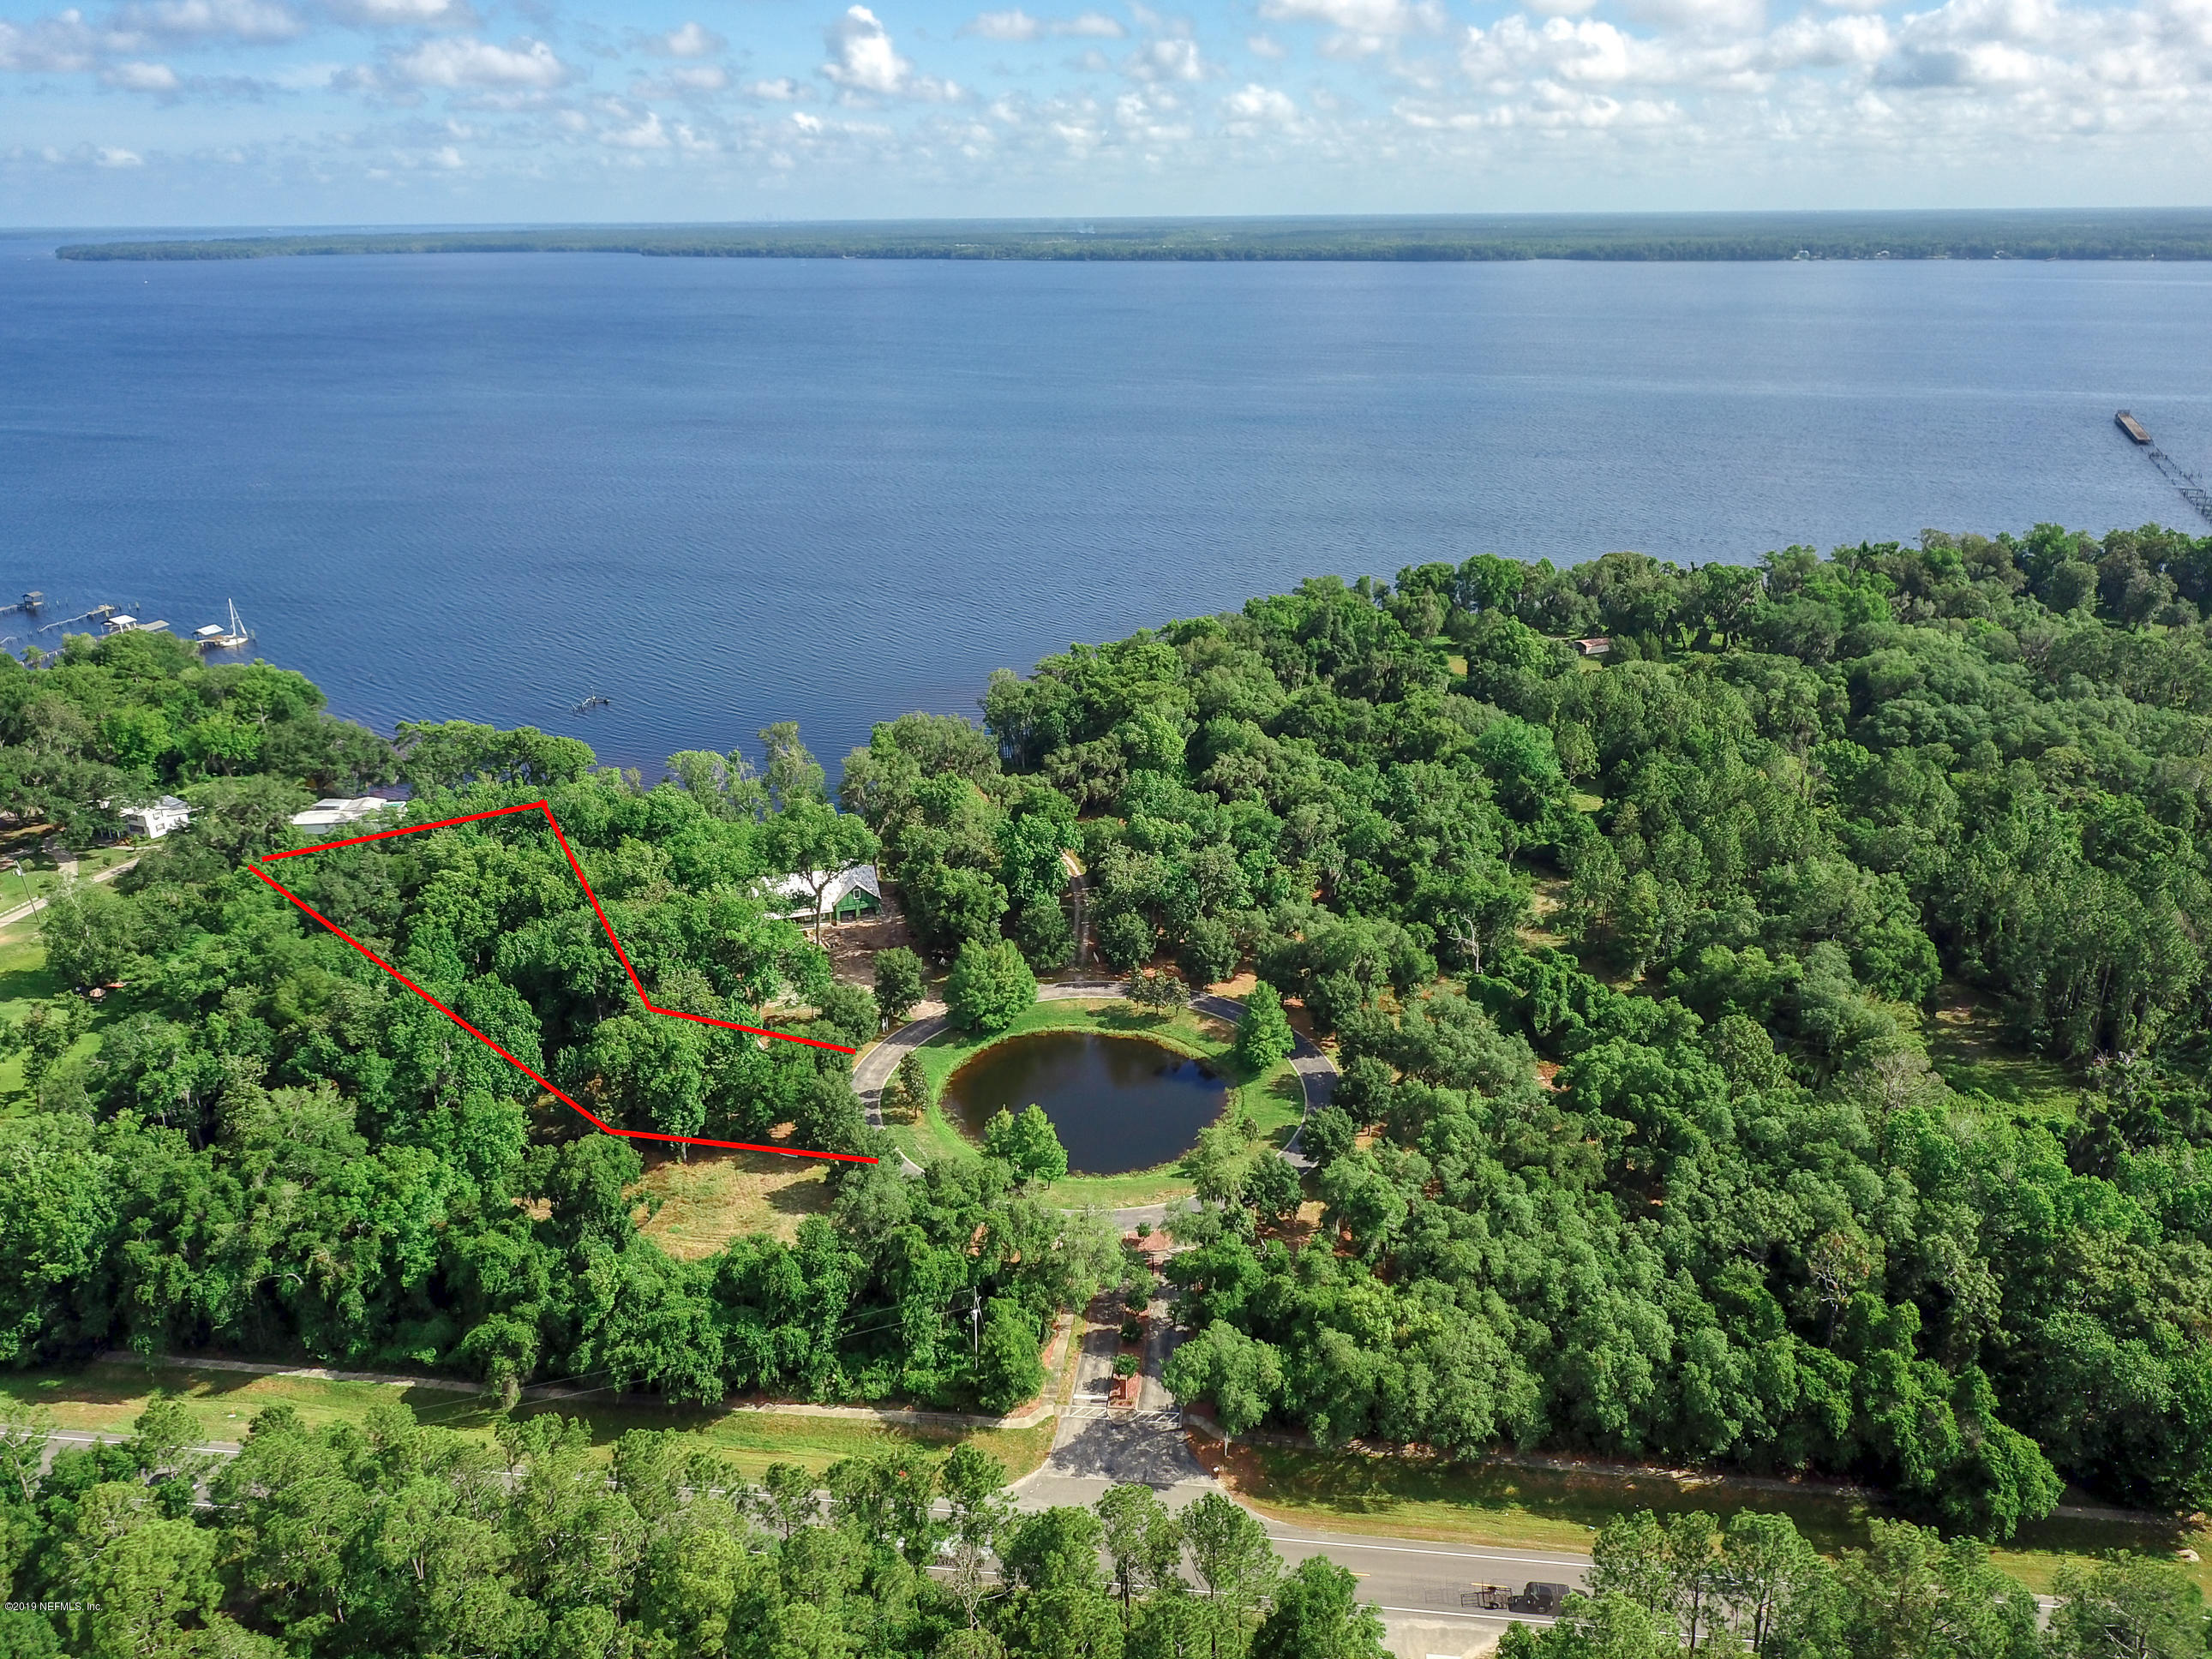 4156-1 RIVERVIEW, GREEN COVE SPRINGS, FLORIDA 32043, 4 Bedrooms Bedrooms, ,3 BathroomsBathrooms,Residential,For sale,RIVERVIEW,1016415